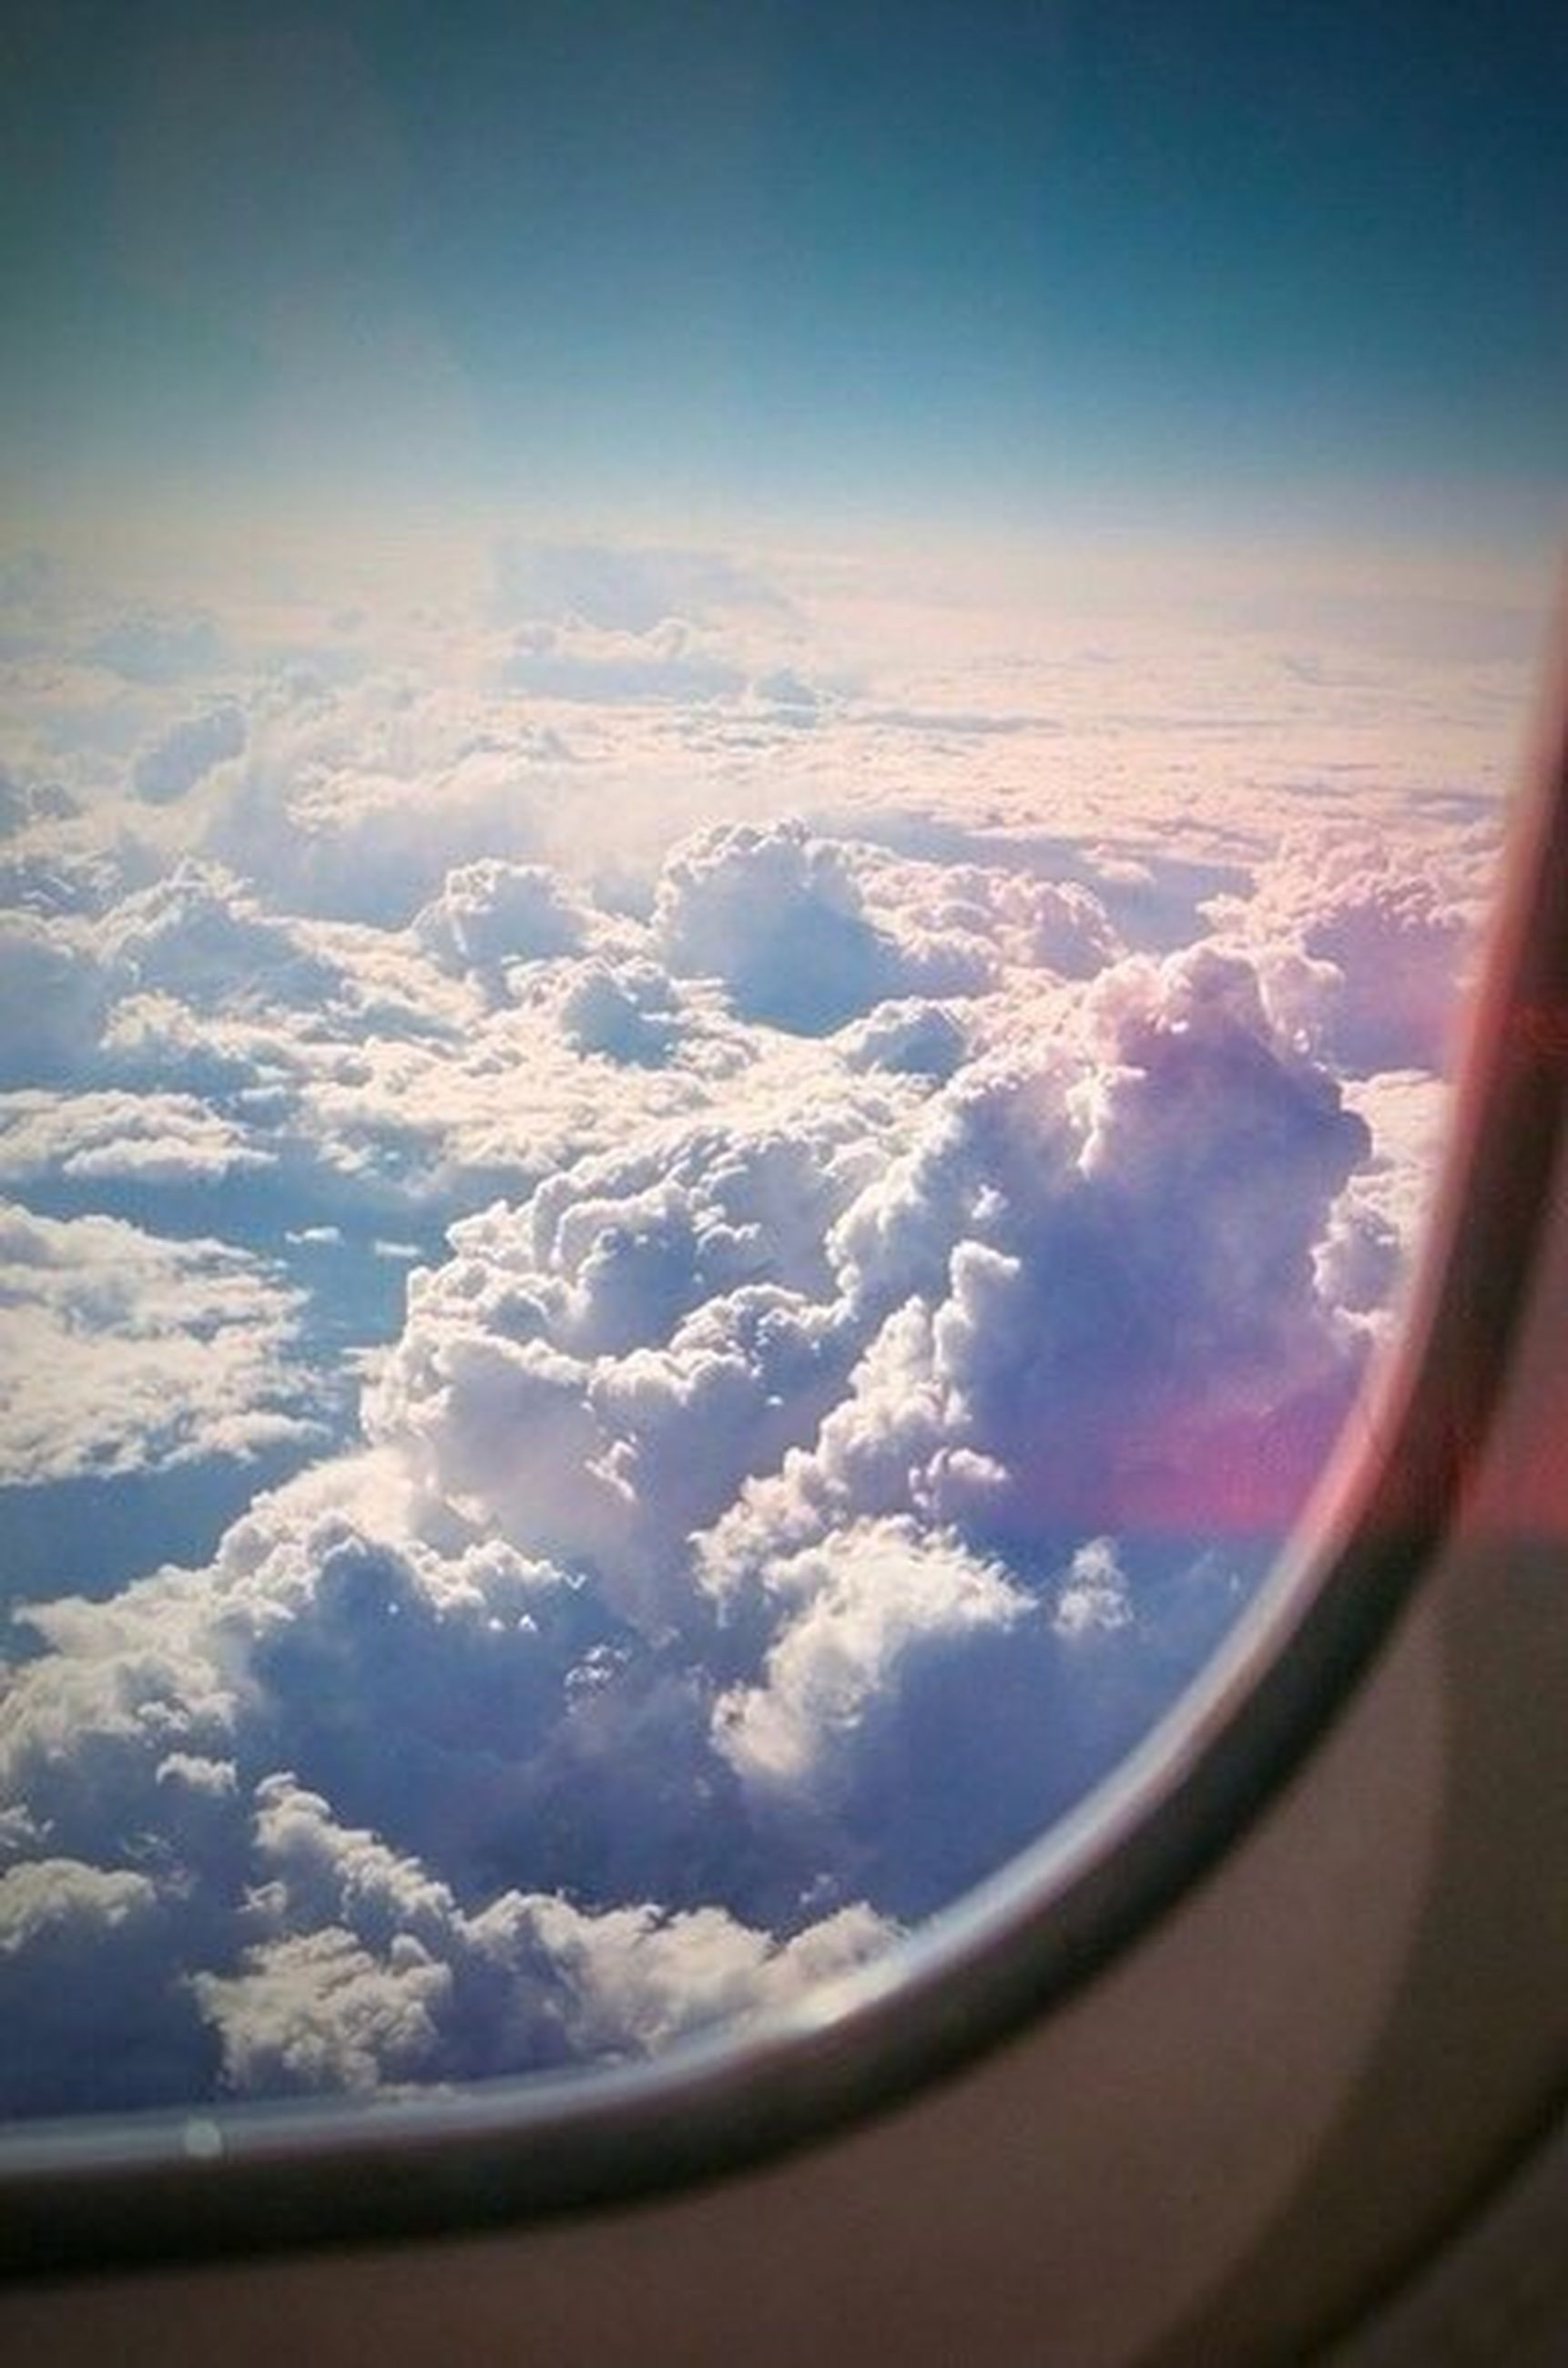 transportation, airplane, mode of transport, vehicle interior, sky, window, air vehicle, part of, transparent, glass - material, cropped, cloud - sky, flying, aircraft wing, scenics, travel, cloudscape, cloud, beauty in nature, aerial view